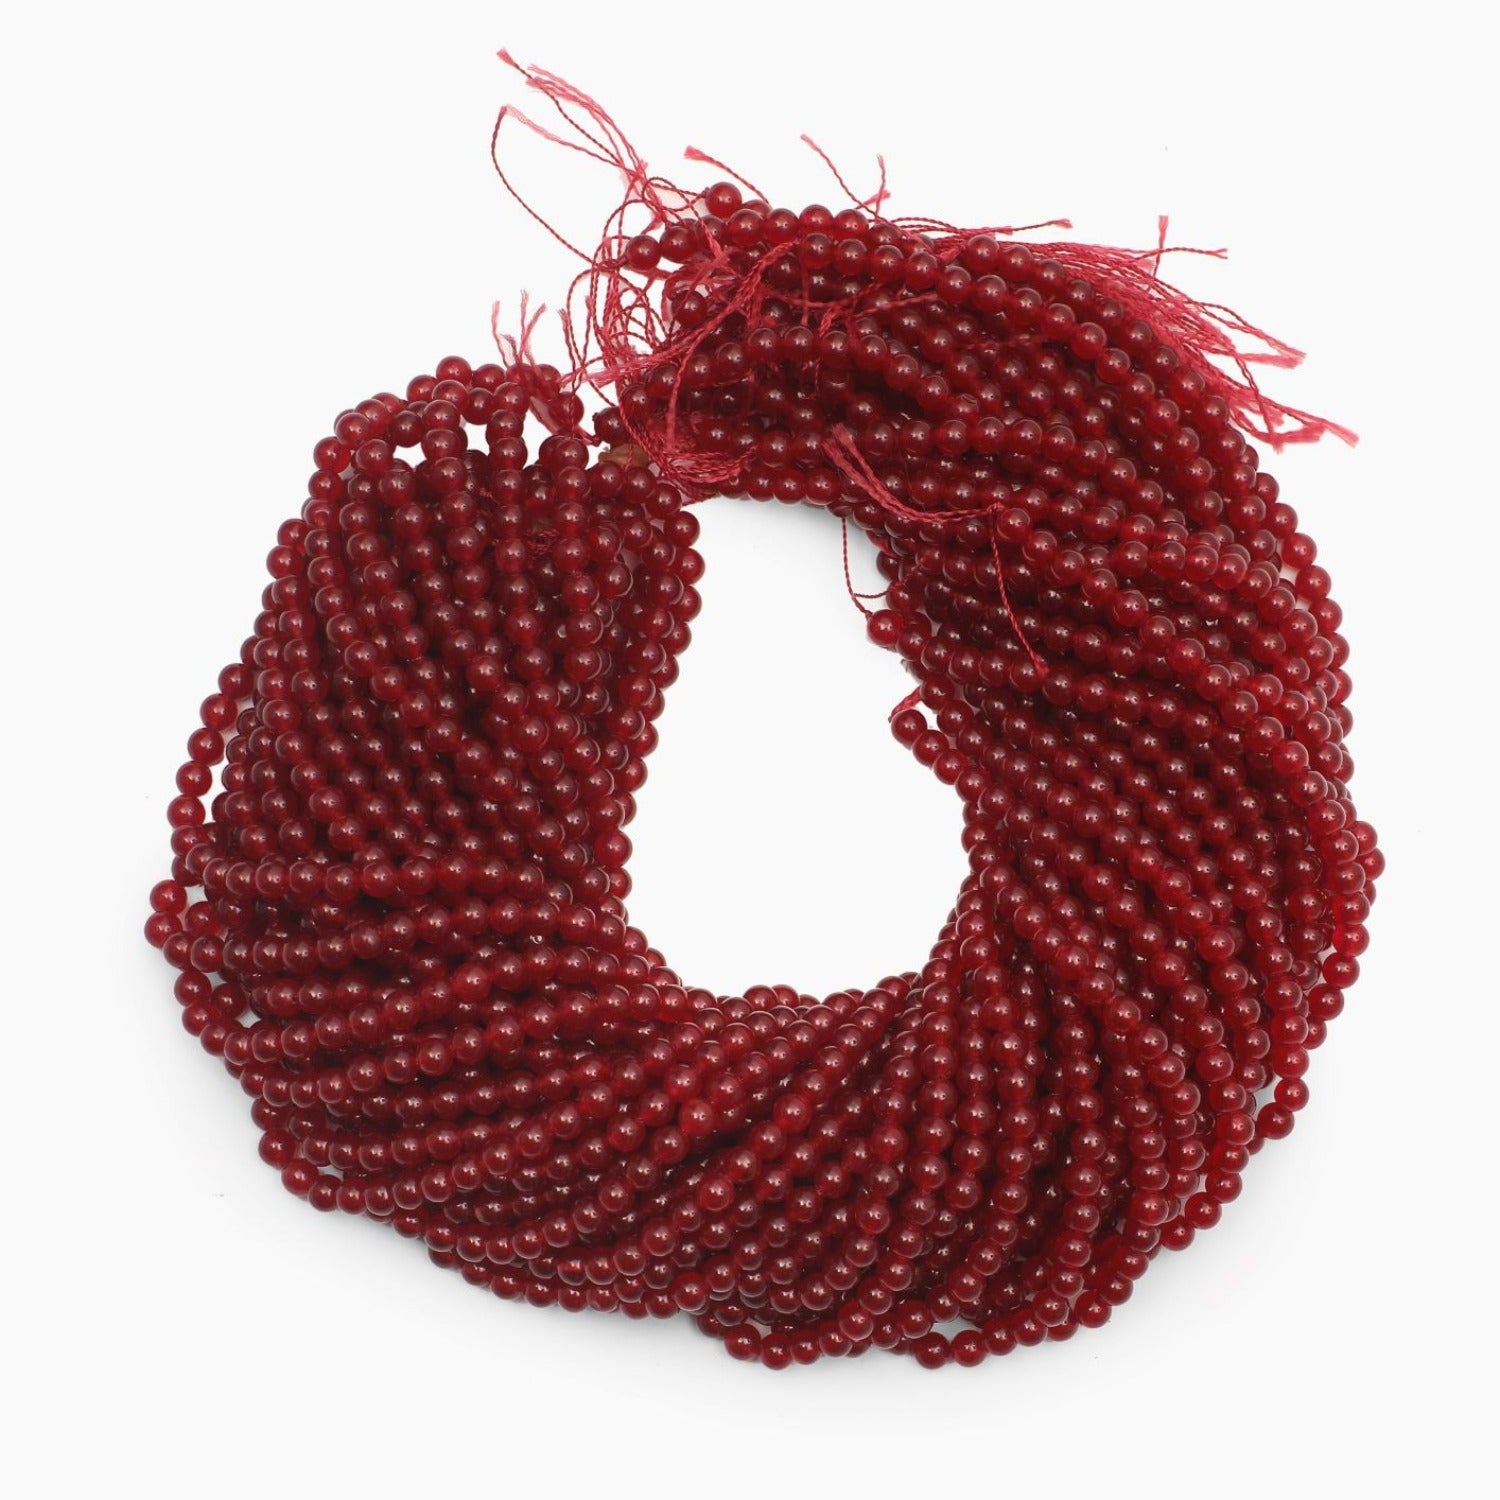 Red Jade Dyed Quartz 5mm Beads- Sold Per Strand